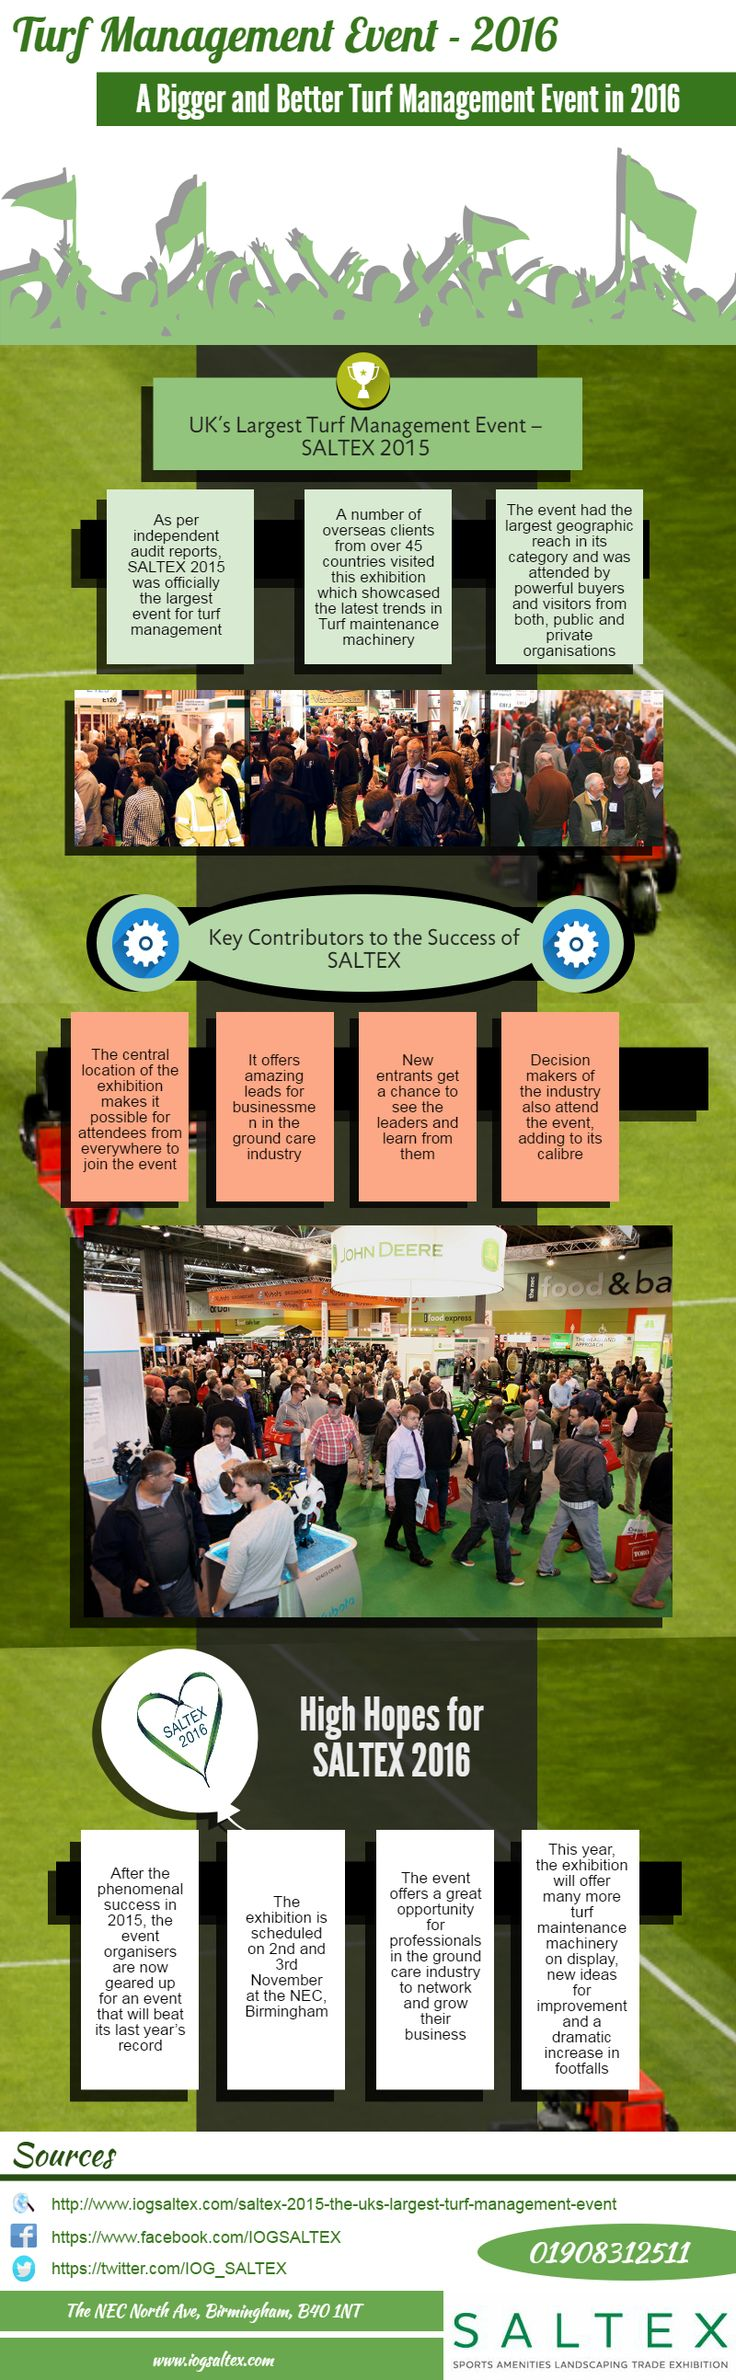 A Bigger and Better Turf Management Event in 2016 - As per independent audit reports, SALTEX 2015 was officially the largest #event for turf management. A number of overseas clients from over 45 countries visited this exhibition which showcased the latest trends in #Turf #maintenance #machinery. After the phenomenal success in 2015, the event organisers are now geared up for an event that will beat its last year's record. The exhibition is scheduled on 2nd and 3rd November at the NEC…